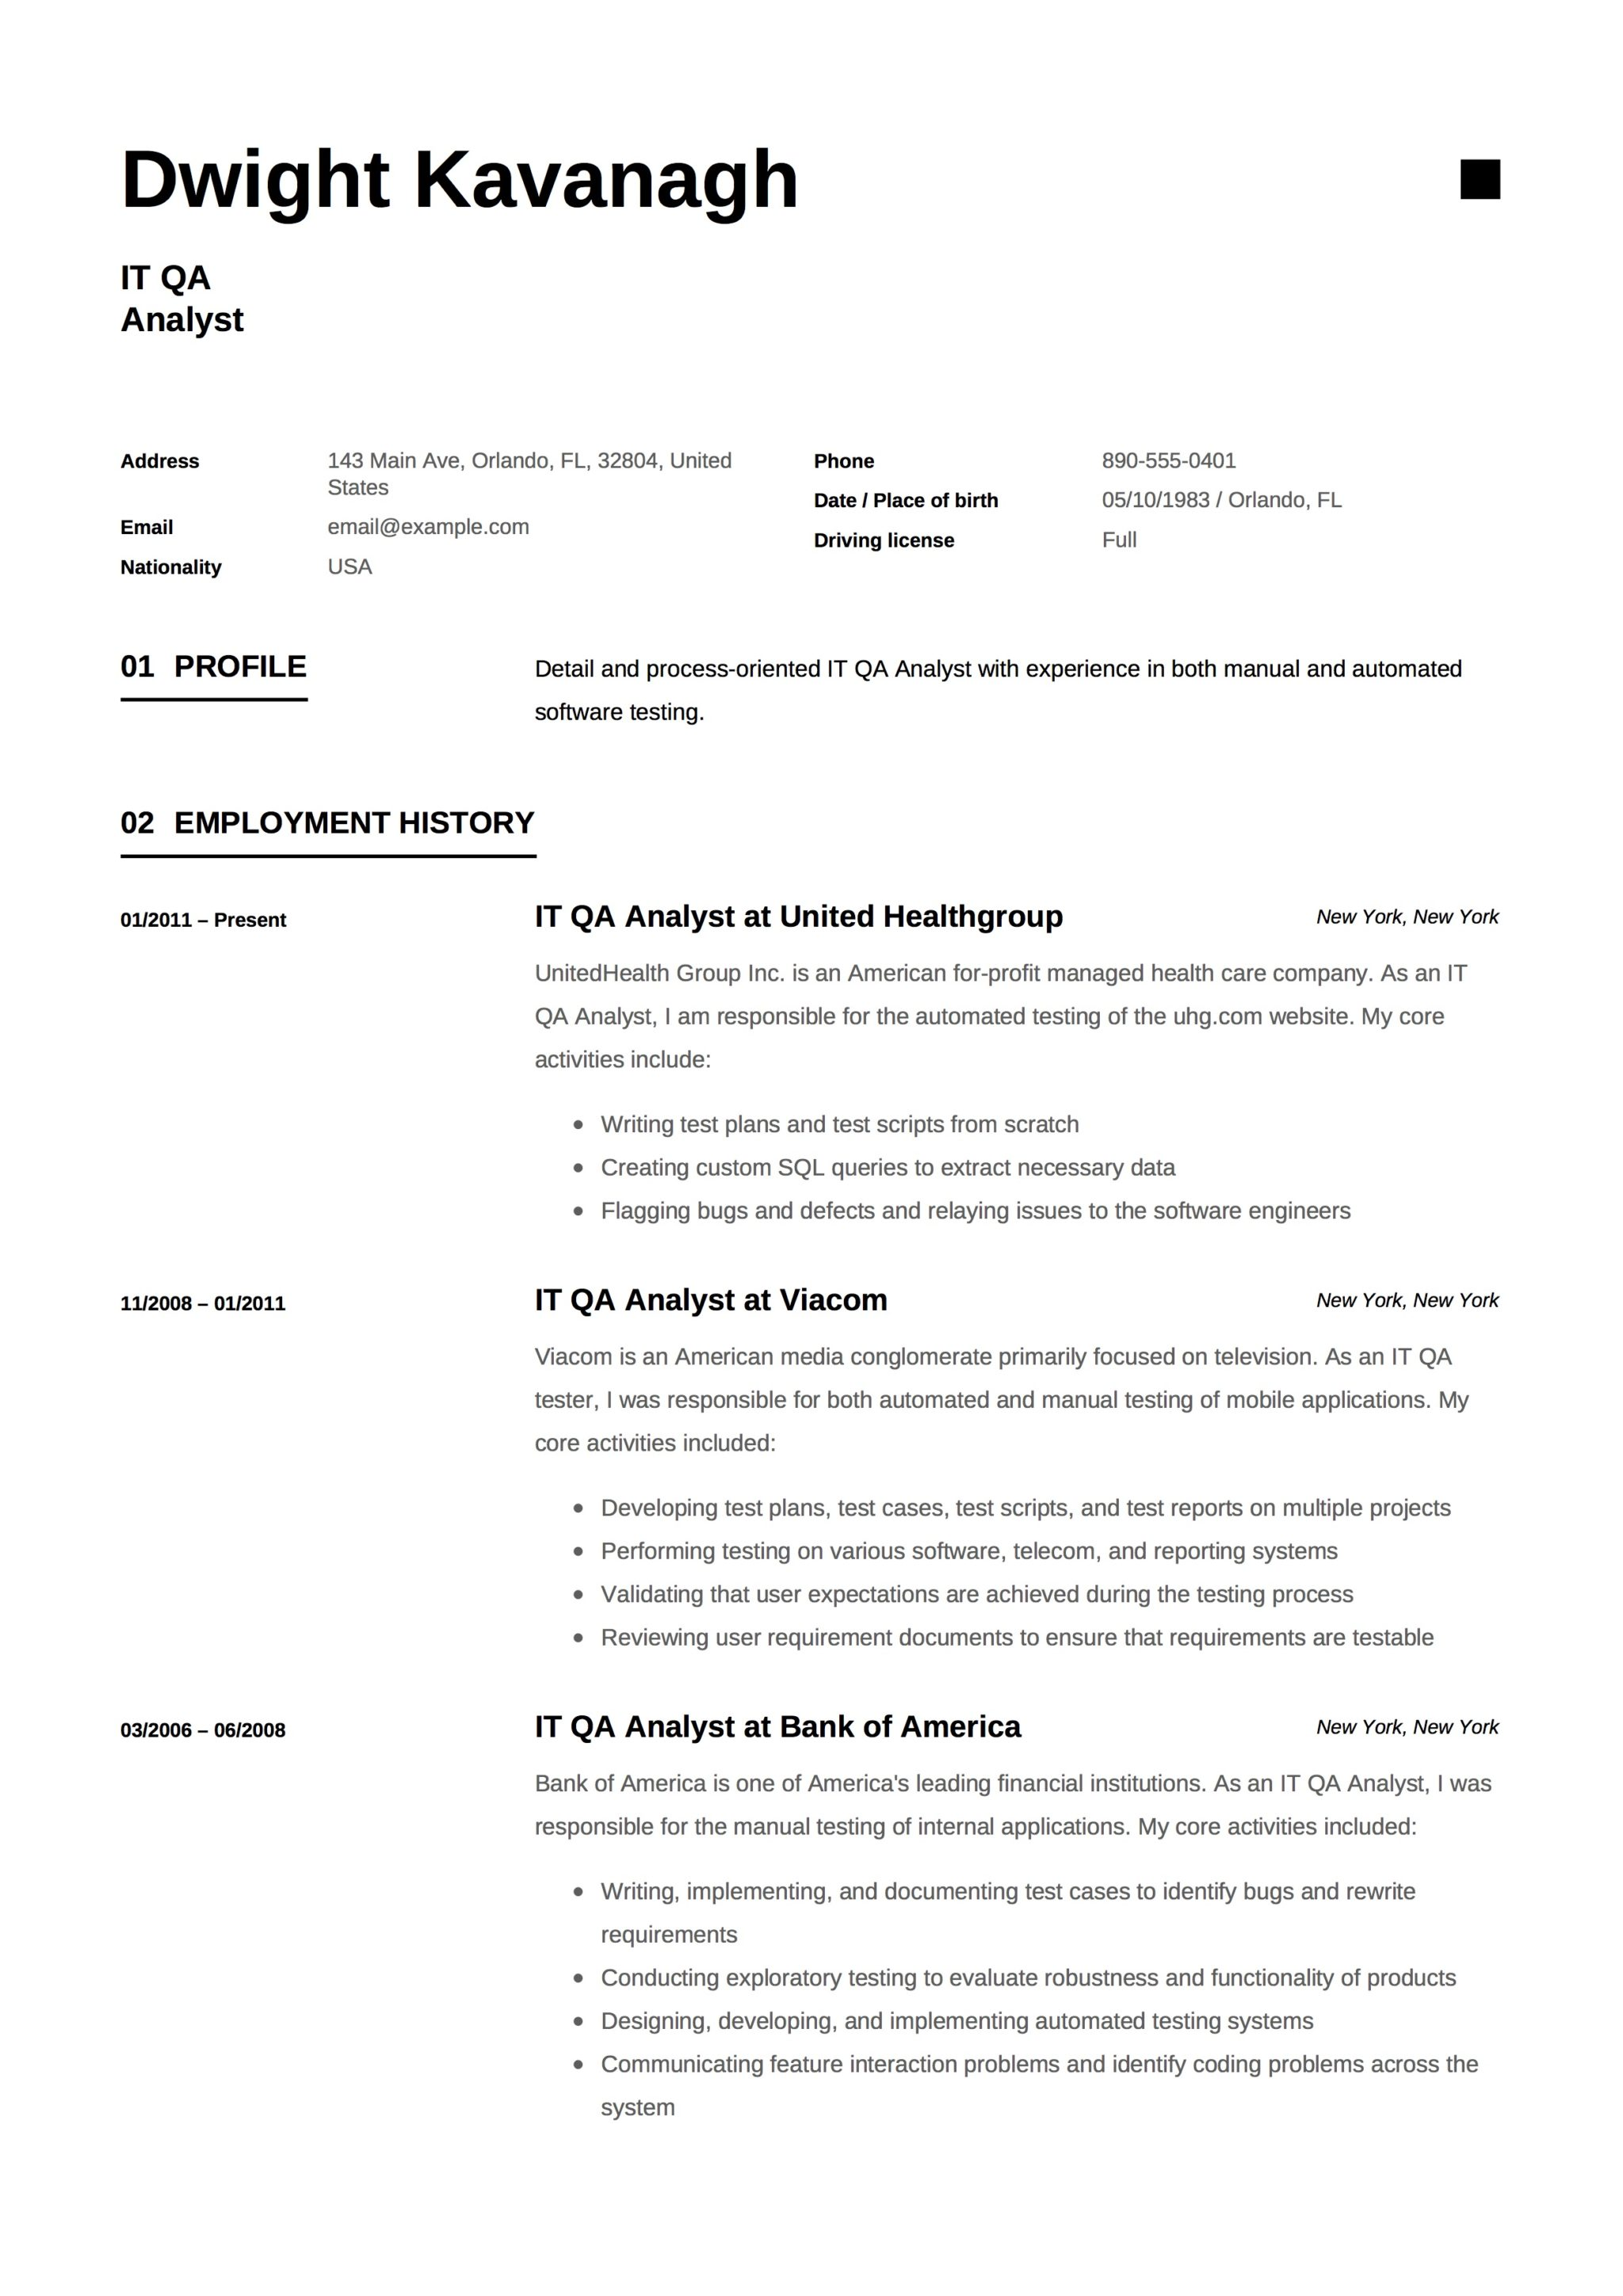 IT QA Analyst Template Resume 1